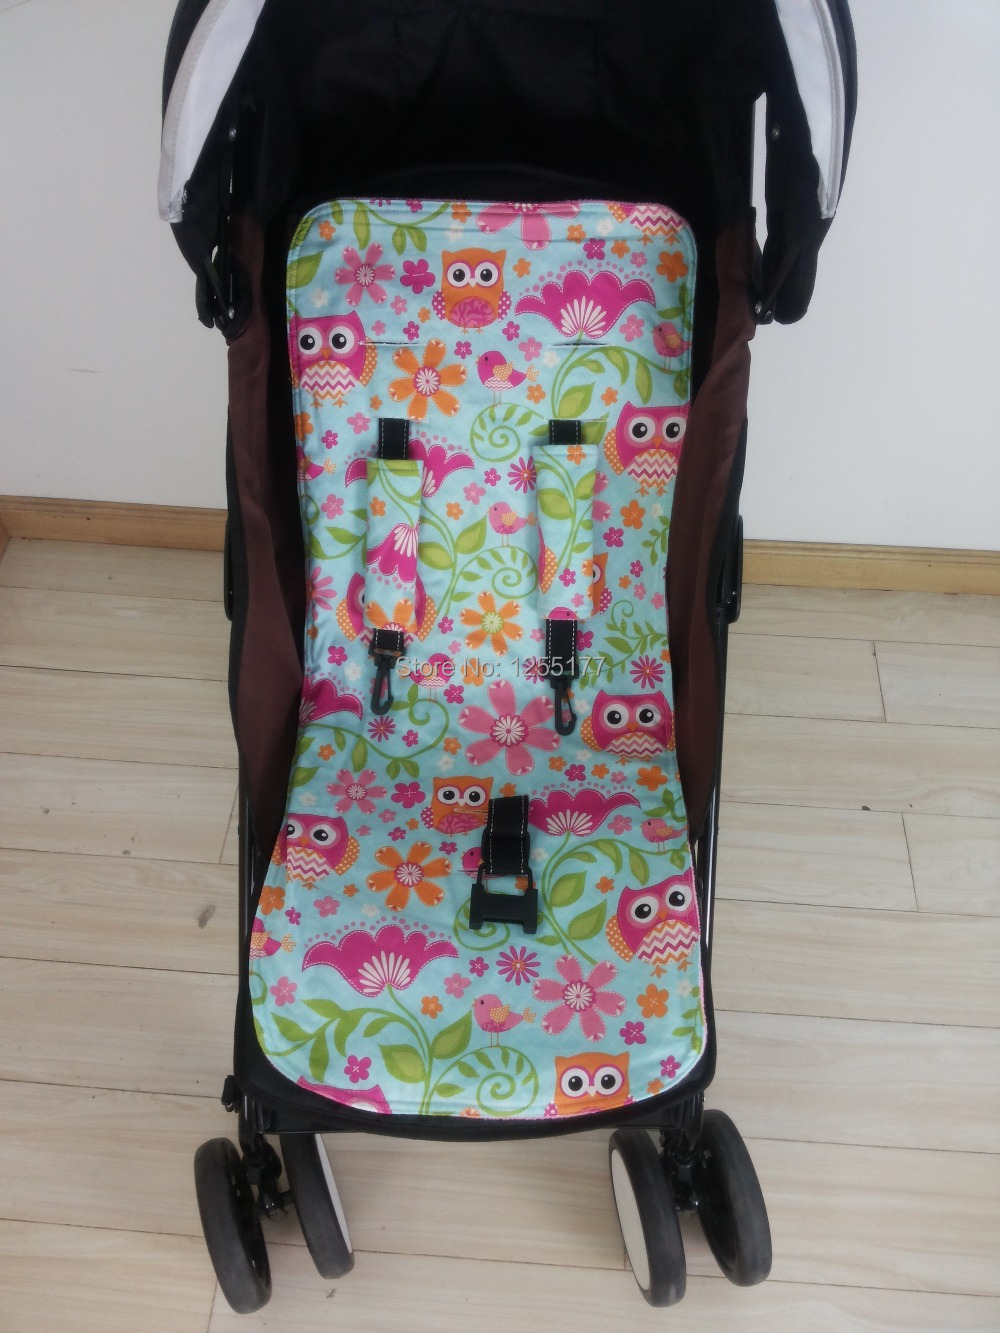 Two Side Revisiablebaby Pram Linerstroller Linercar Seat Liner Owl And Pink Minky Match Safty Belt Cover Free Shipping In Three Wheels Stroller From